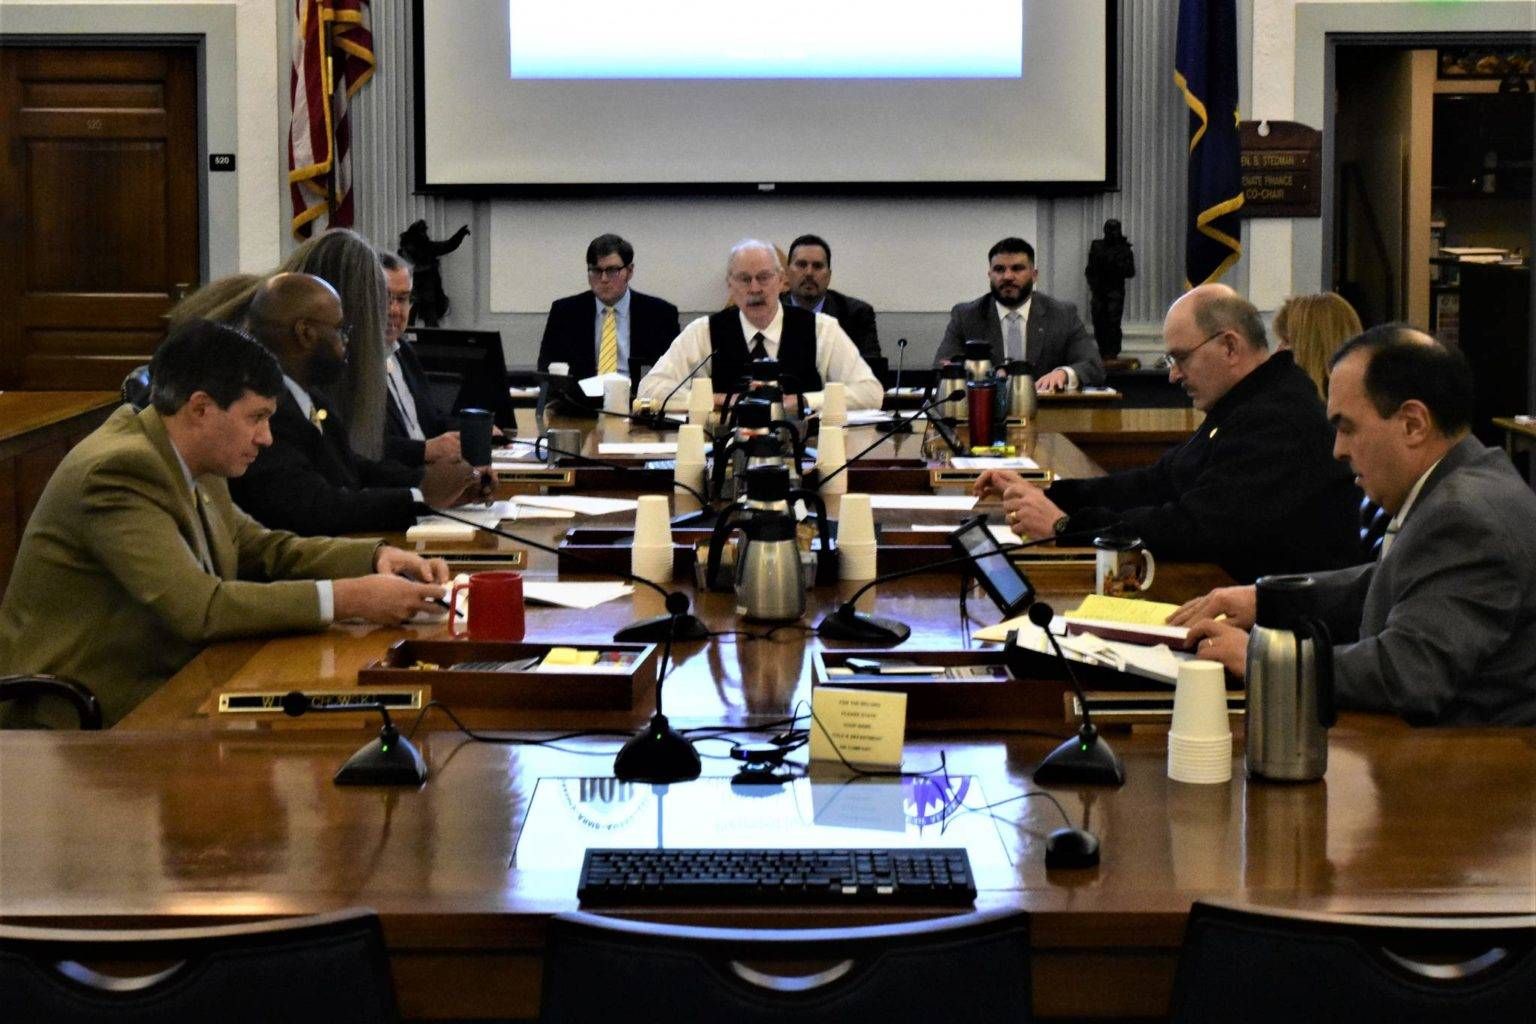 Senate Finance Committee Chairman Sen. Bert Stedman, R-Sitka, sits at the head of the table at a committee meeting on Thursday, Jan. 23, 2020. (Peter Segall | Juneau Empire)